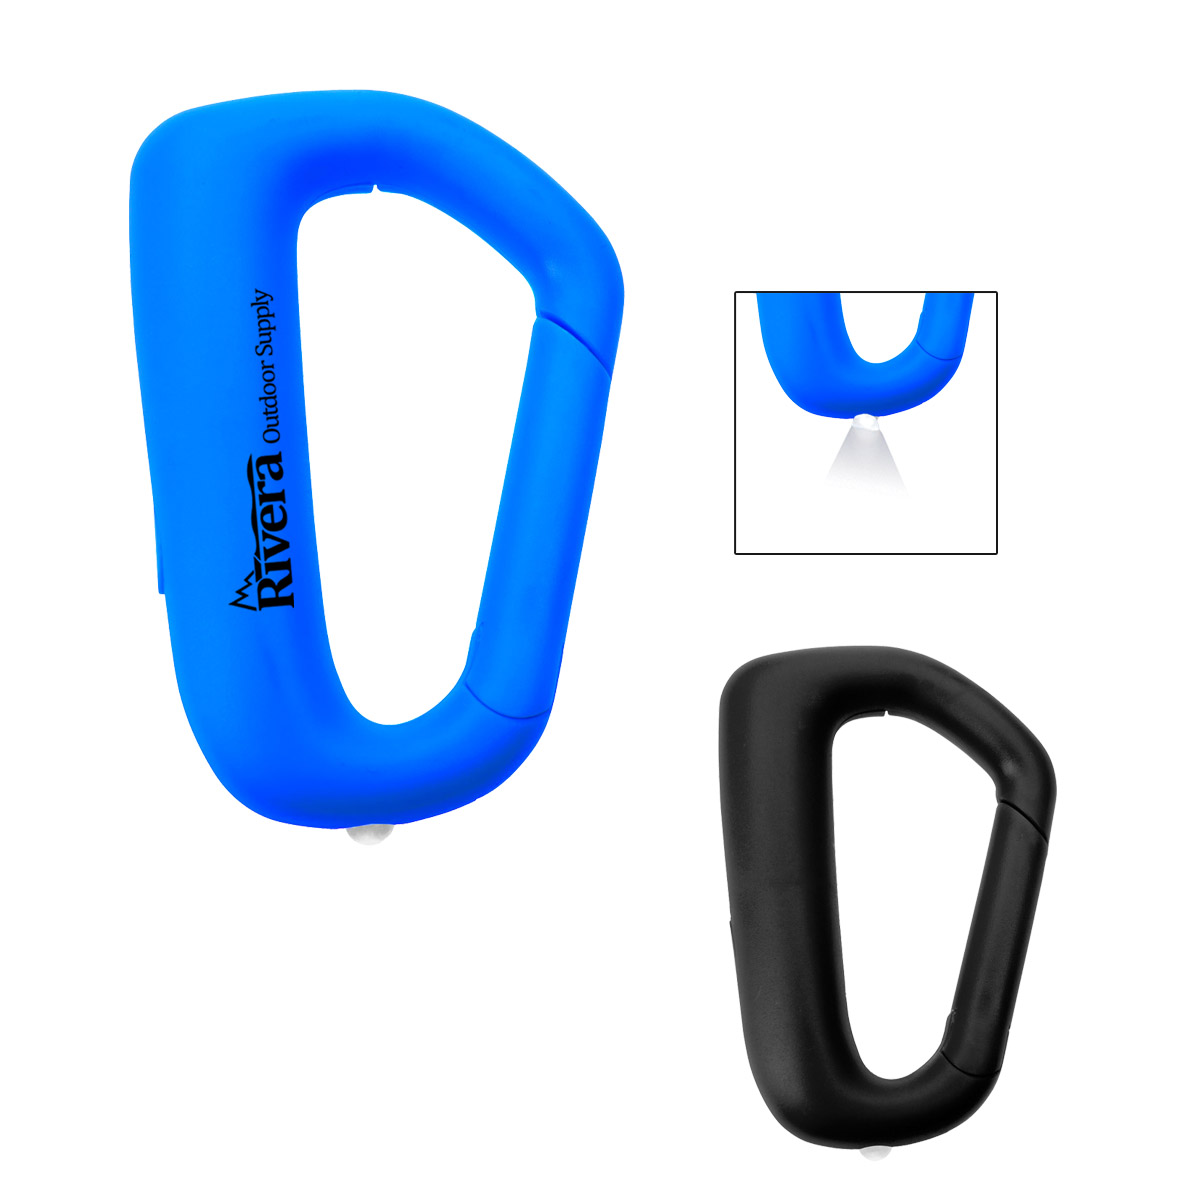 794290530-816 - Carabiner Torch Light - thumbnail